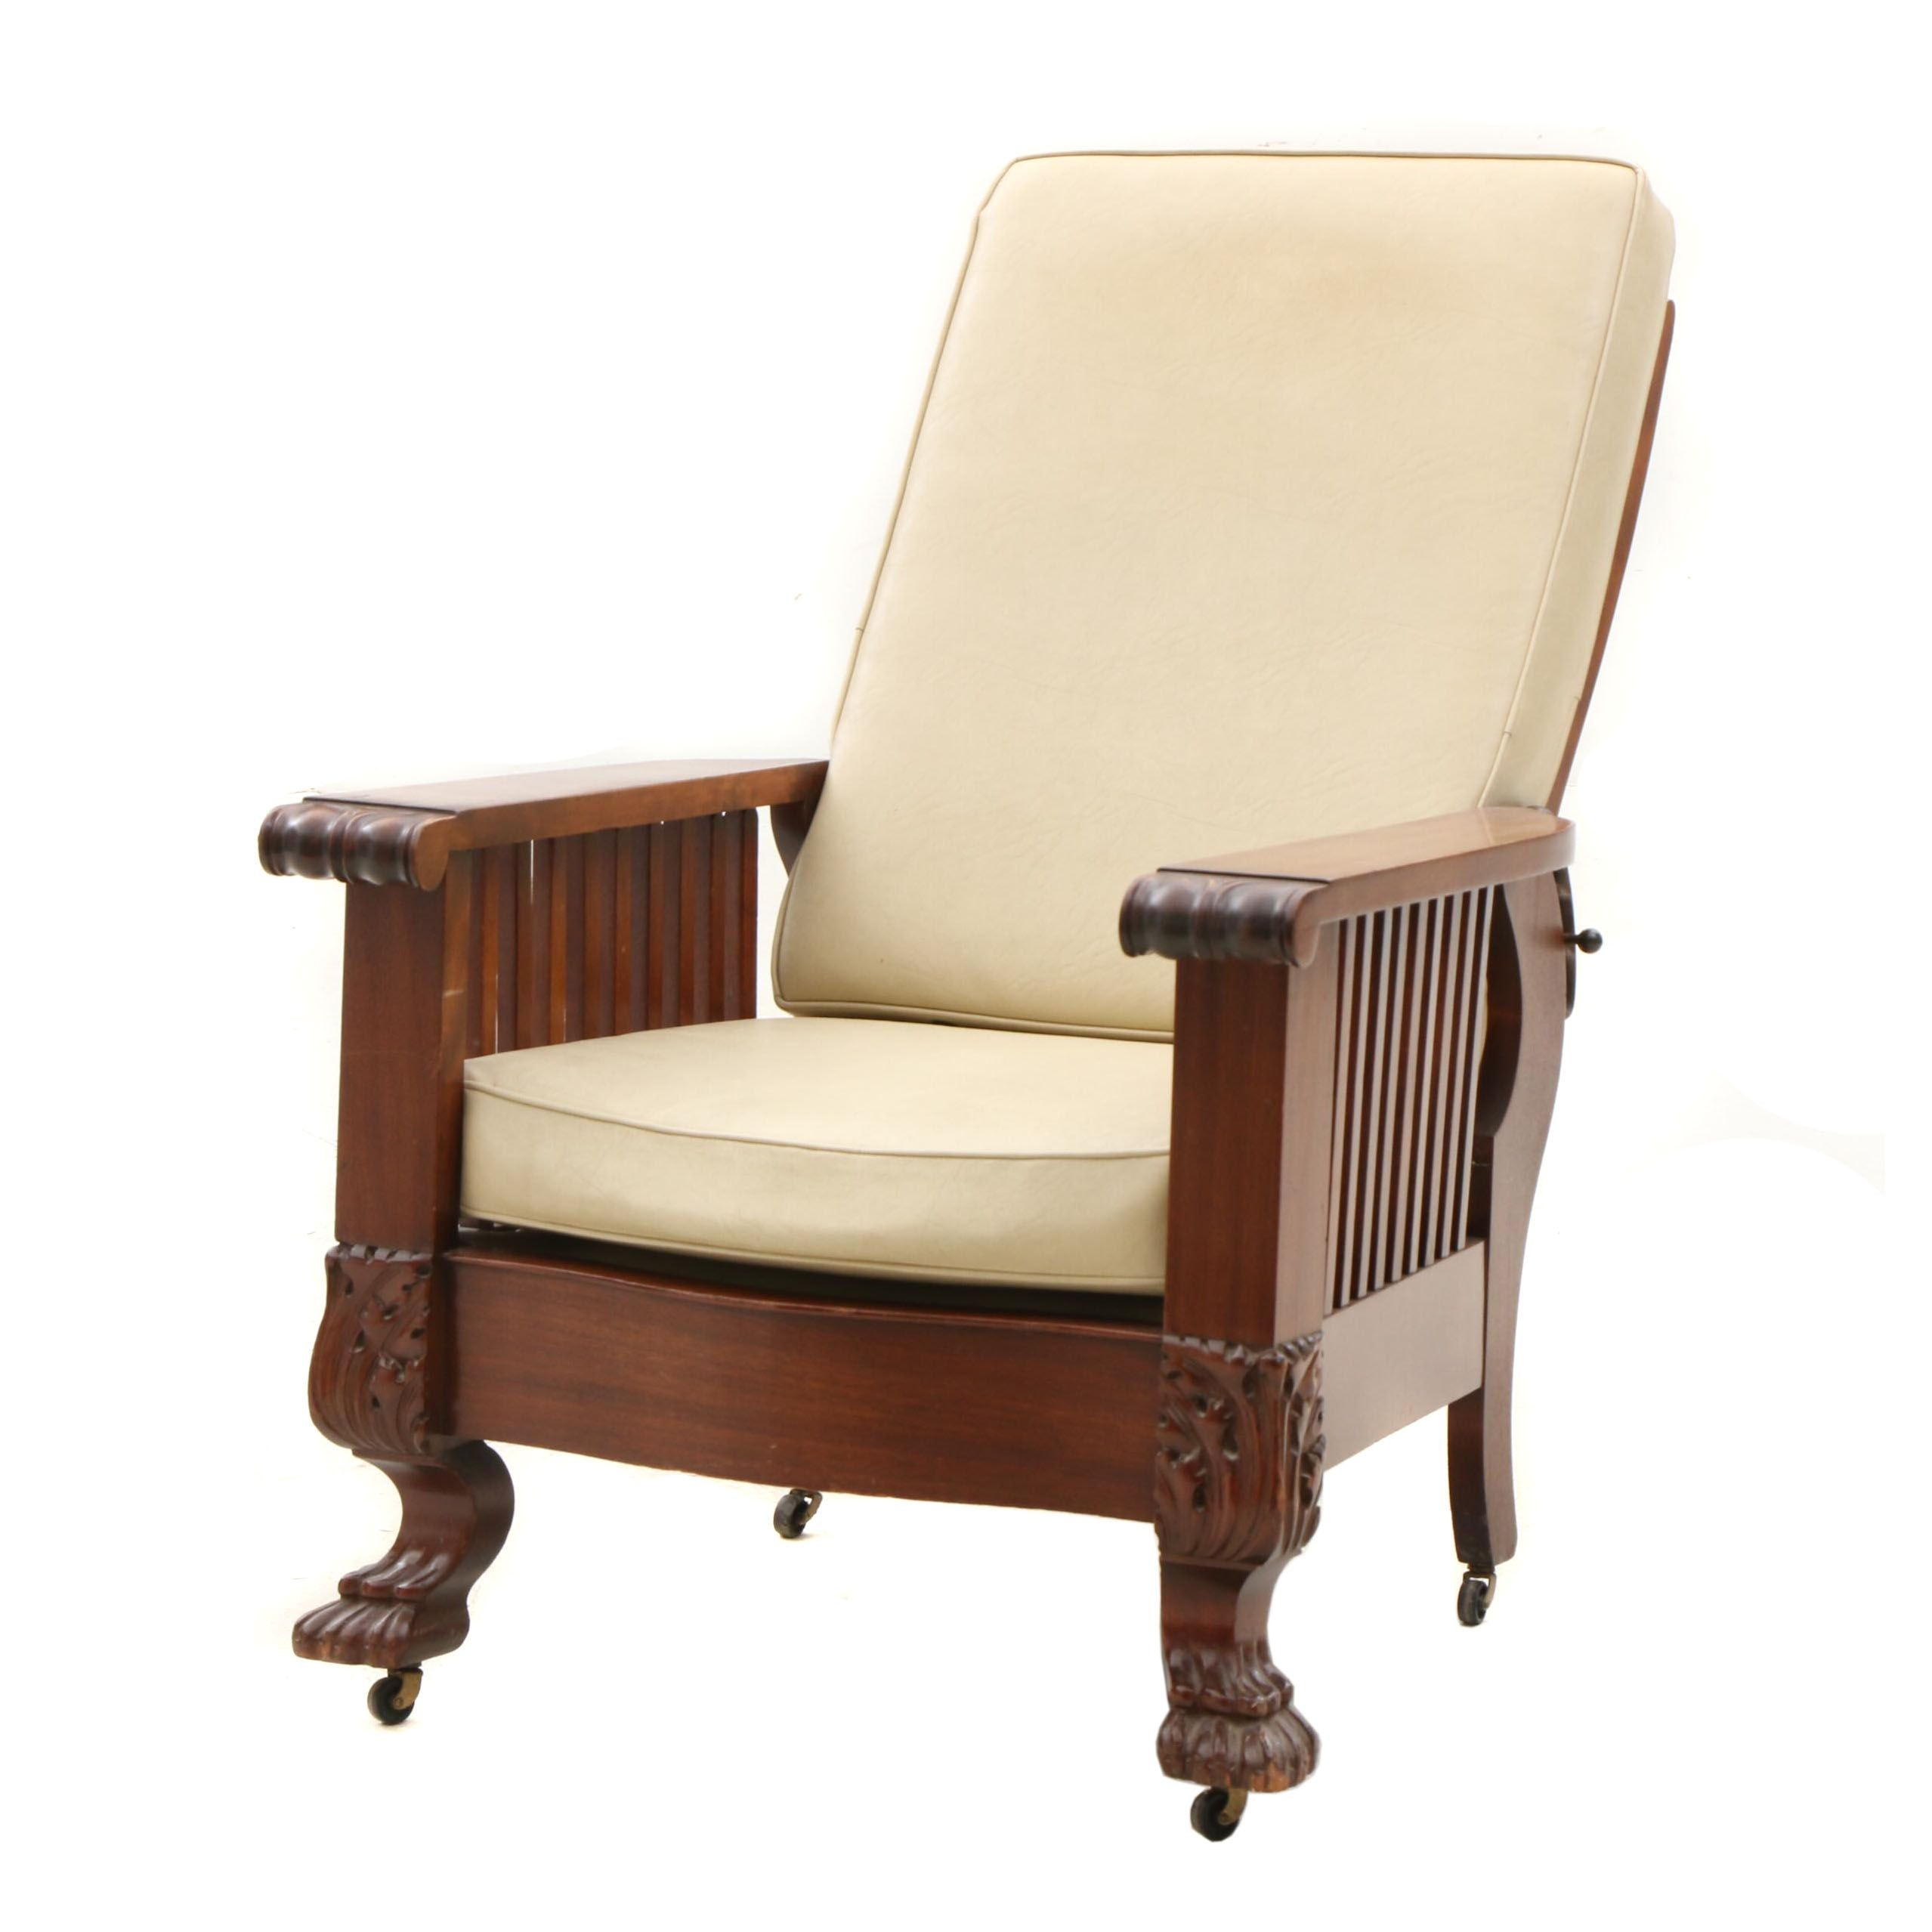 Colonial Revival Walnut Morris Leather Upholstered Arm Chair, Late 19th Century